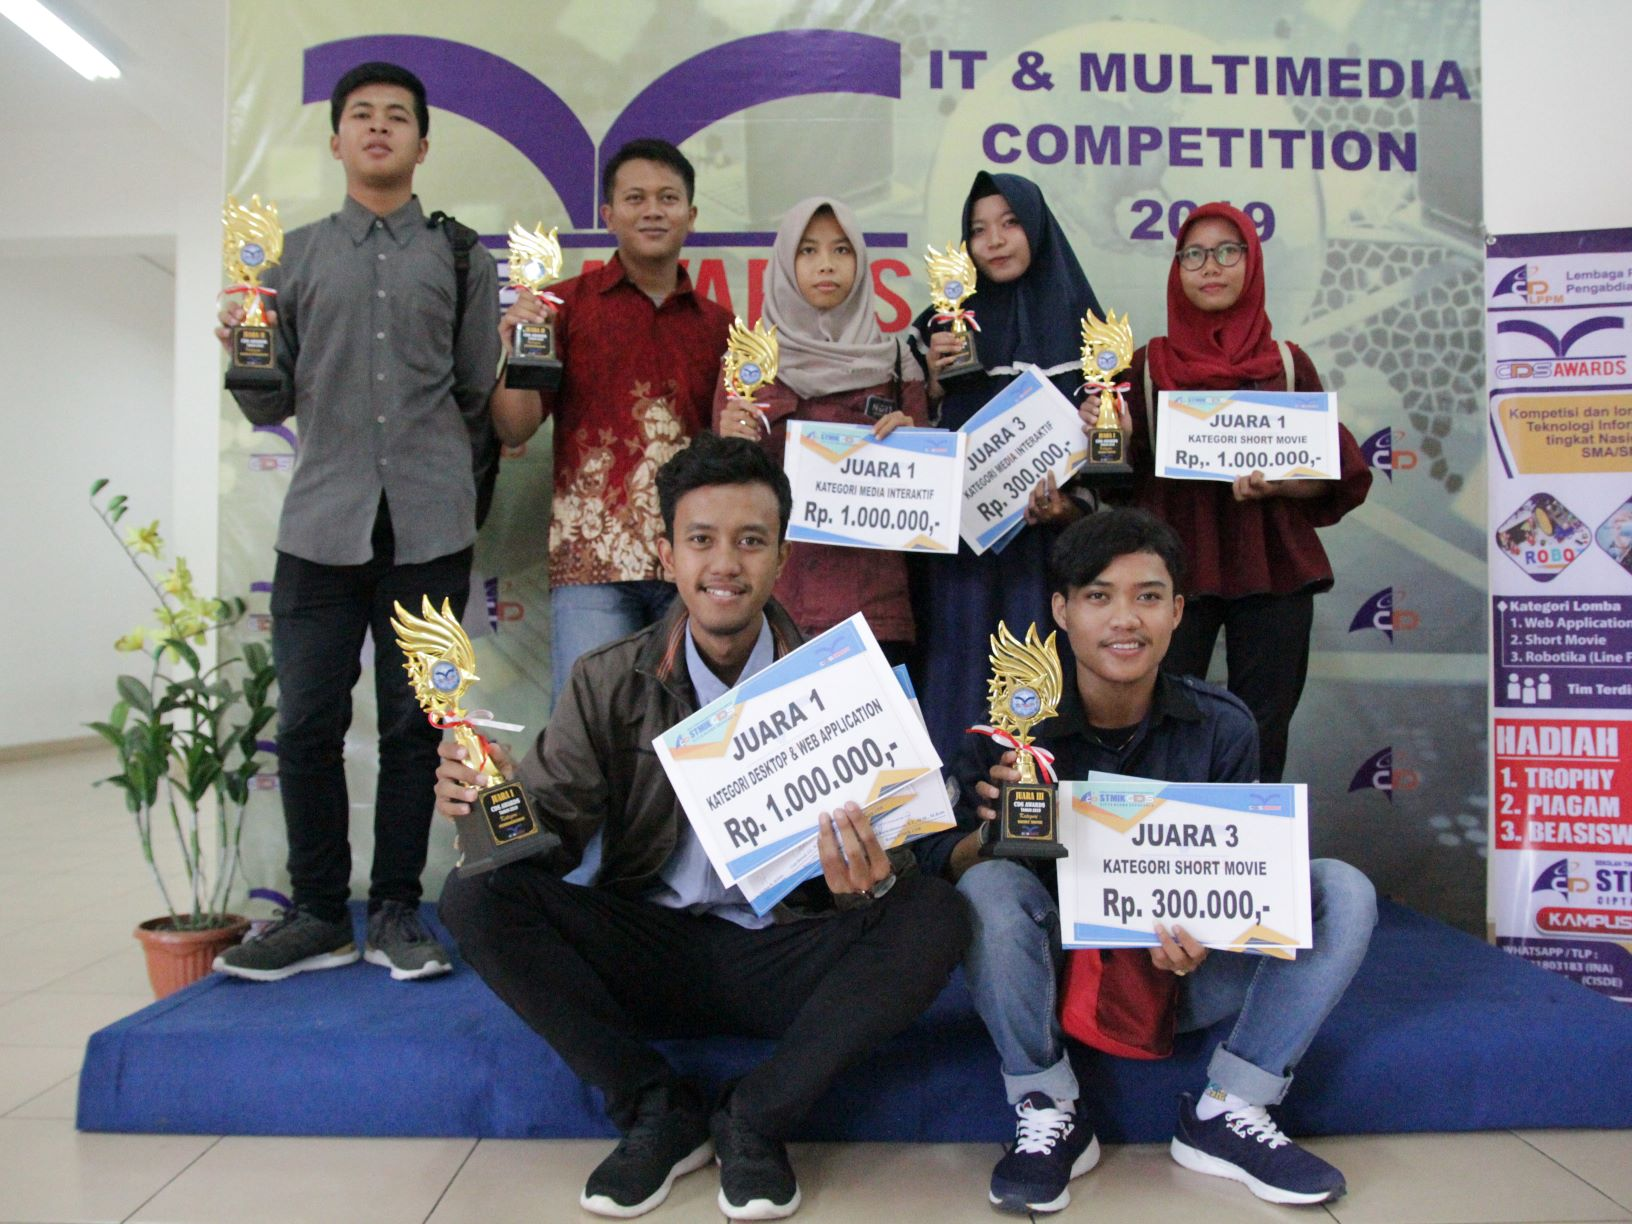 cdsawards_stmik_cds_kampus_multimedia